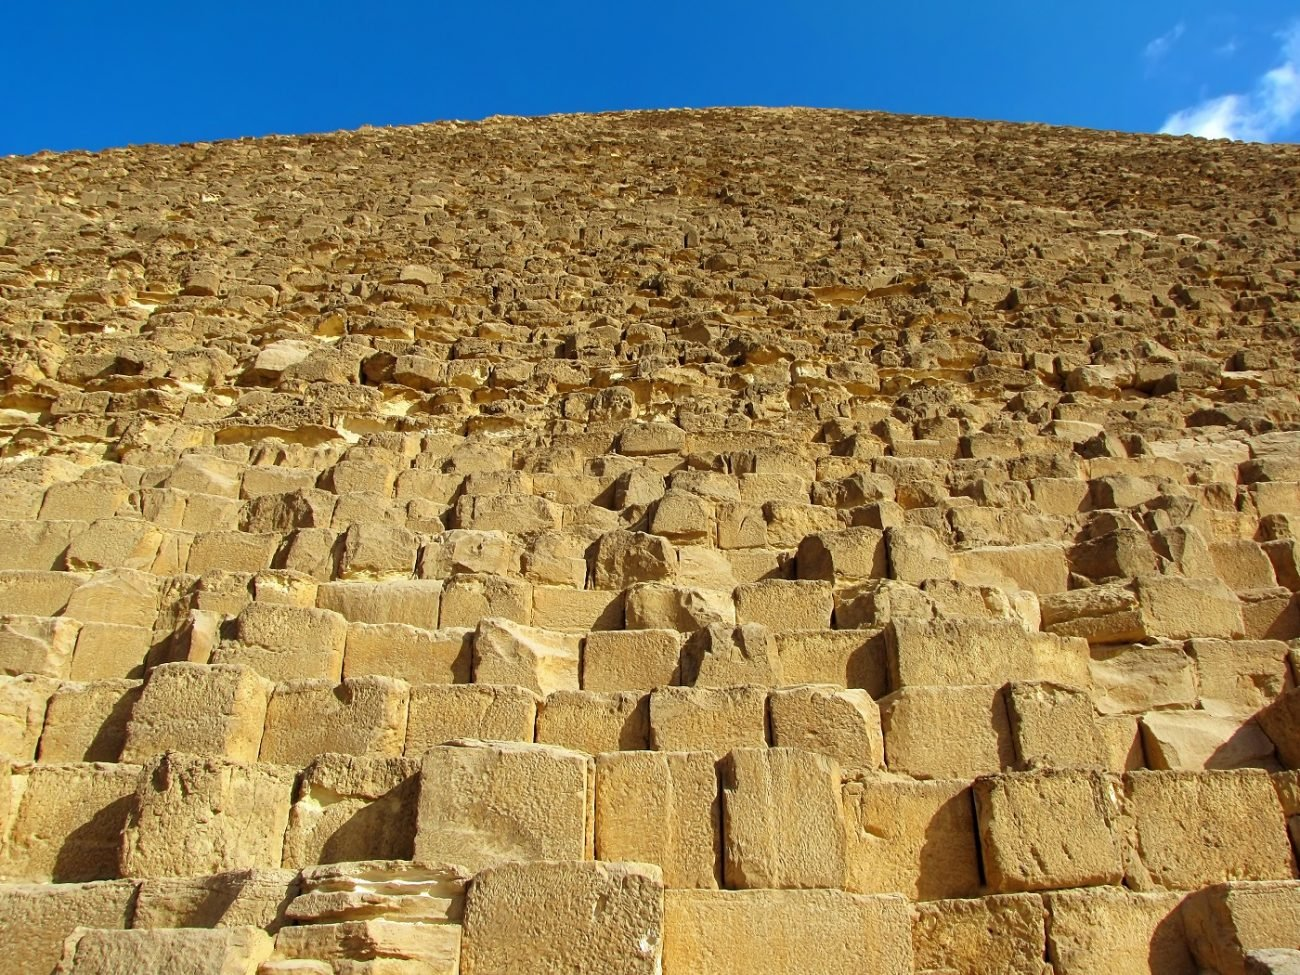 The Great Pyramid of Giza